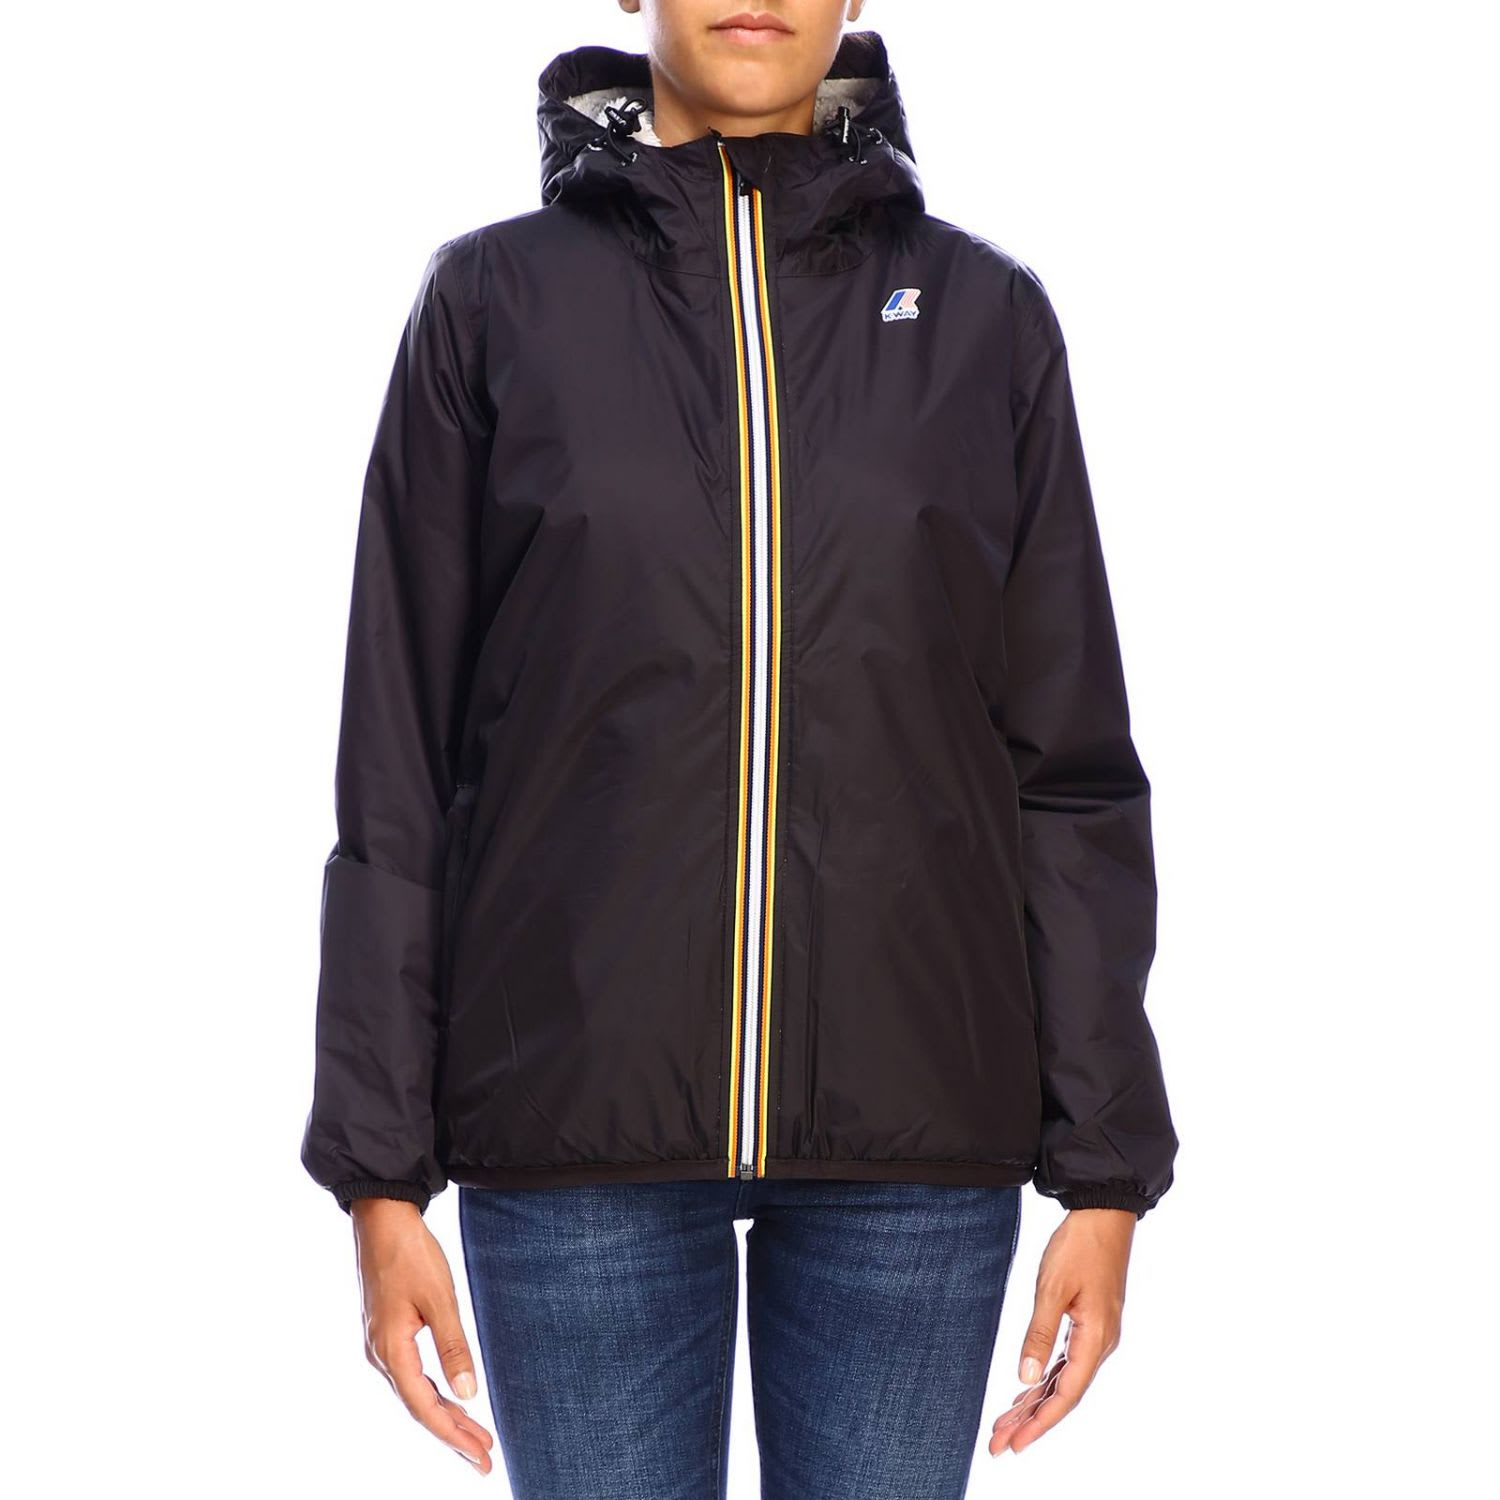 K-way Jacket Jacket Women K-way